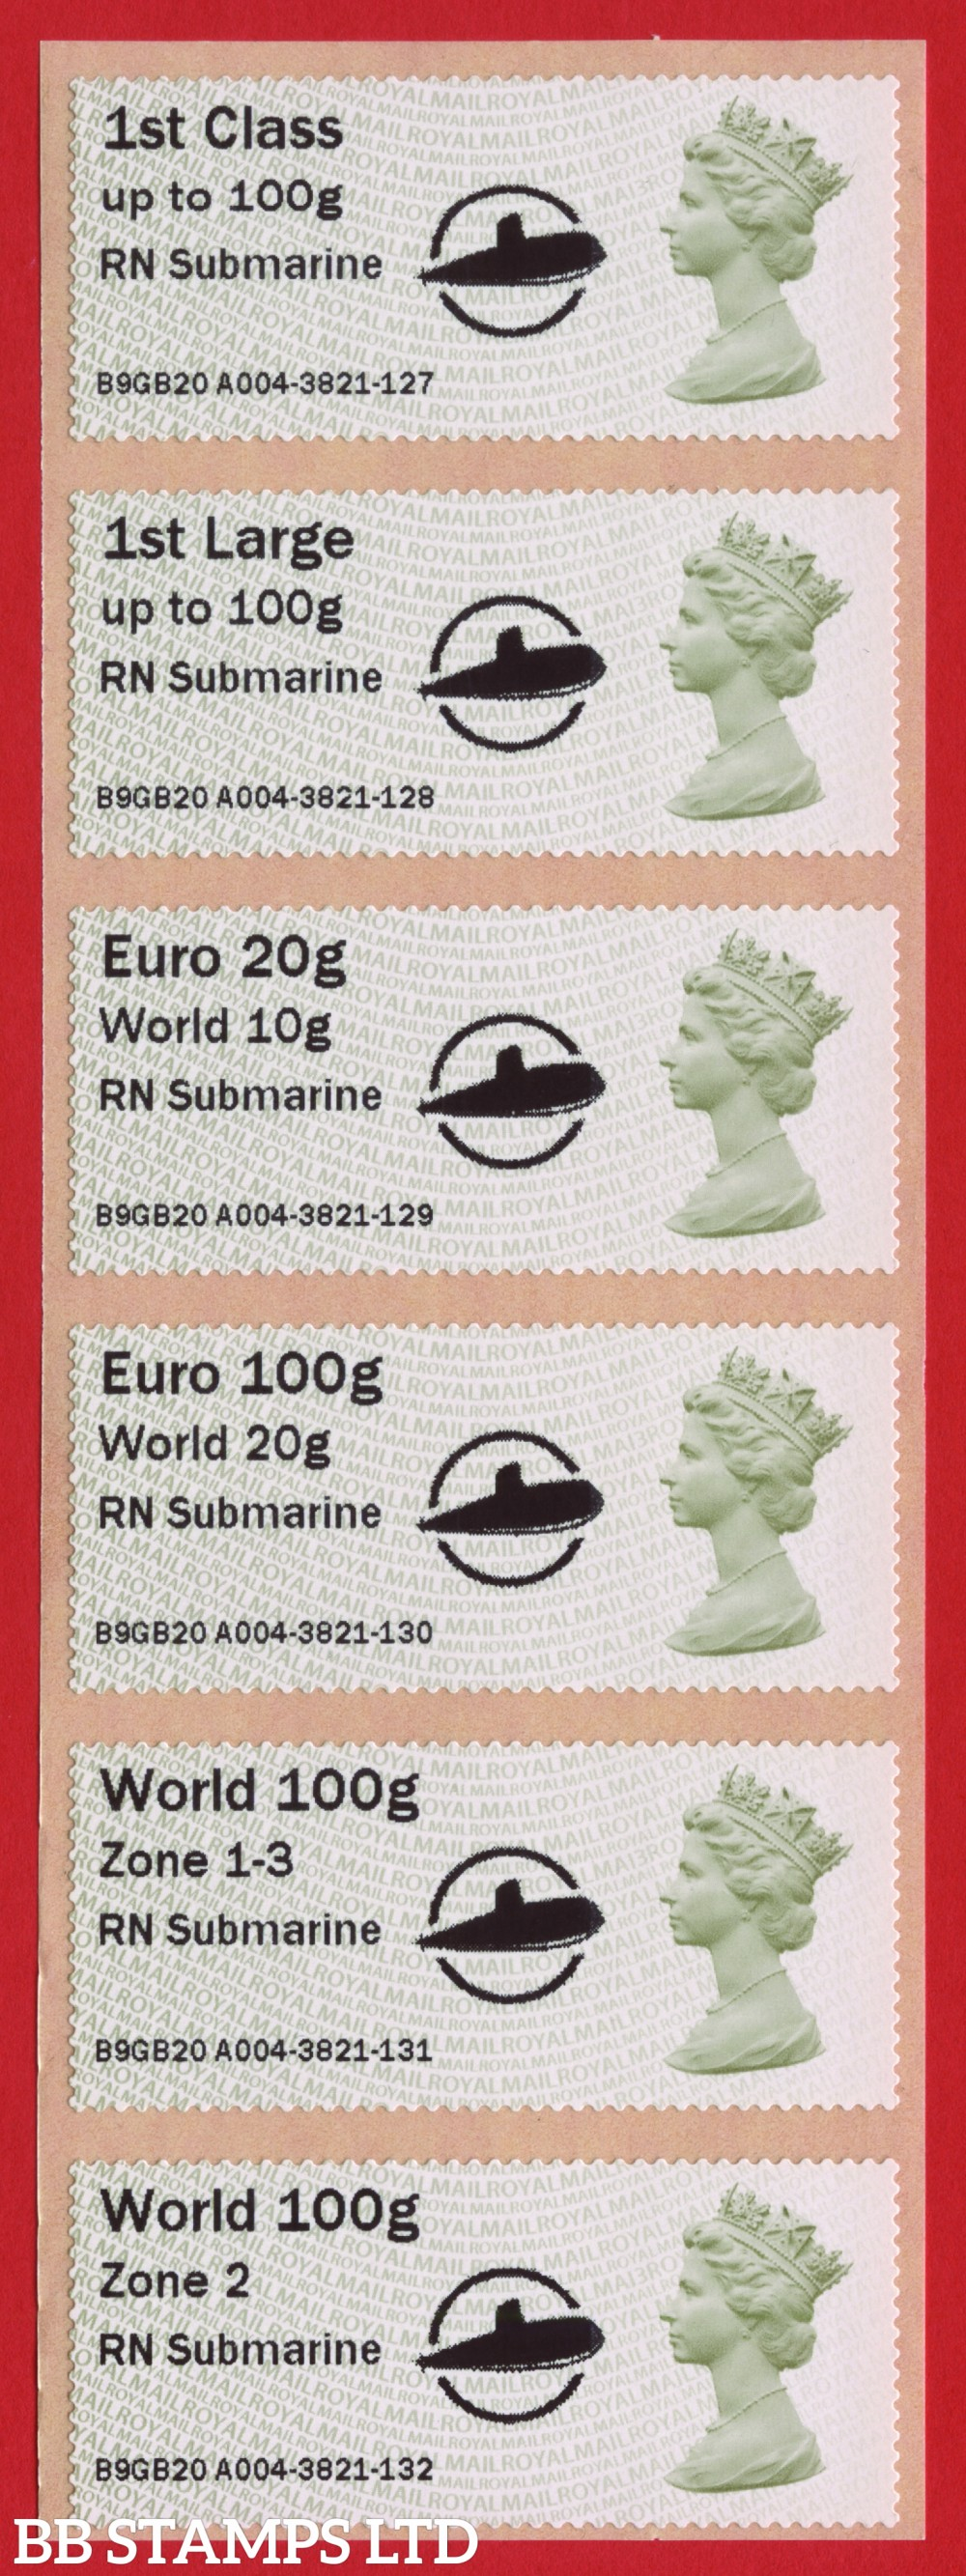 Machin RN Submarine + large Circle Logo, with new overseas tariff stamps as issued on 01 September 2020. Set of 6, TIIIA: 1st, 1stL, Euro 20g World 10g – and new tariff Euro 100g World 20g/World 100g Zone 1-3/World Zone 2 stamps: MA13 (BK29 P19)